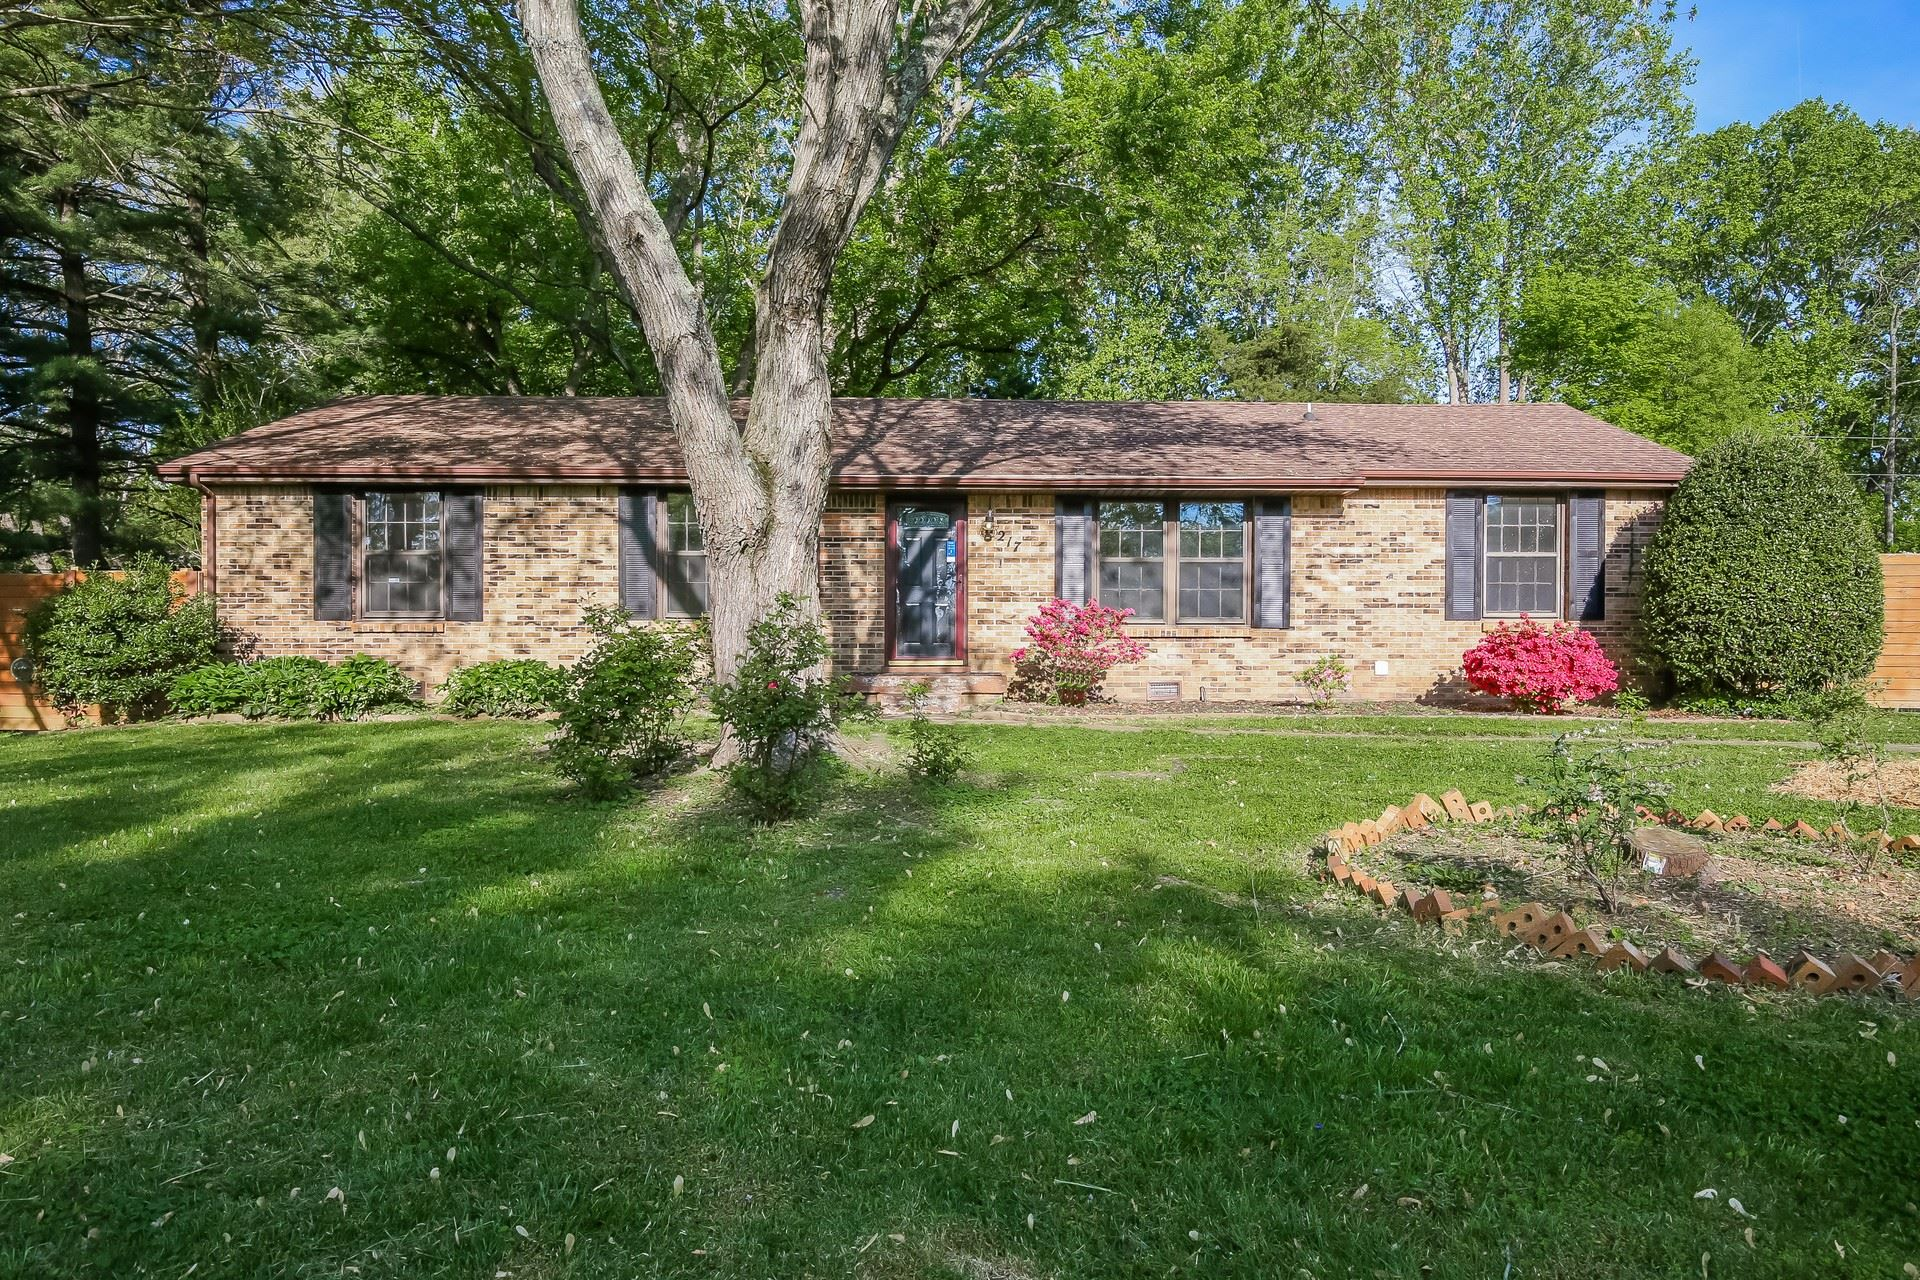 217 Morningside Dr, Clarksville, TN 37042 - MLS#: 2248655